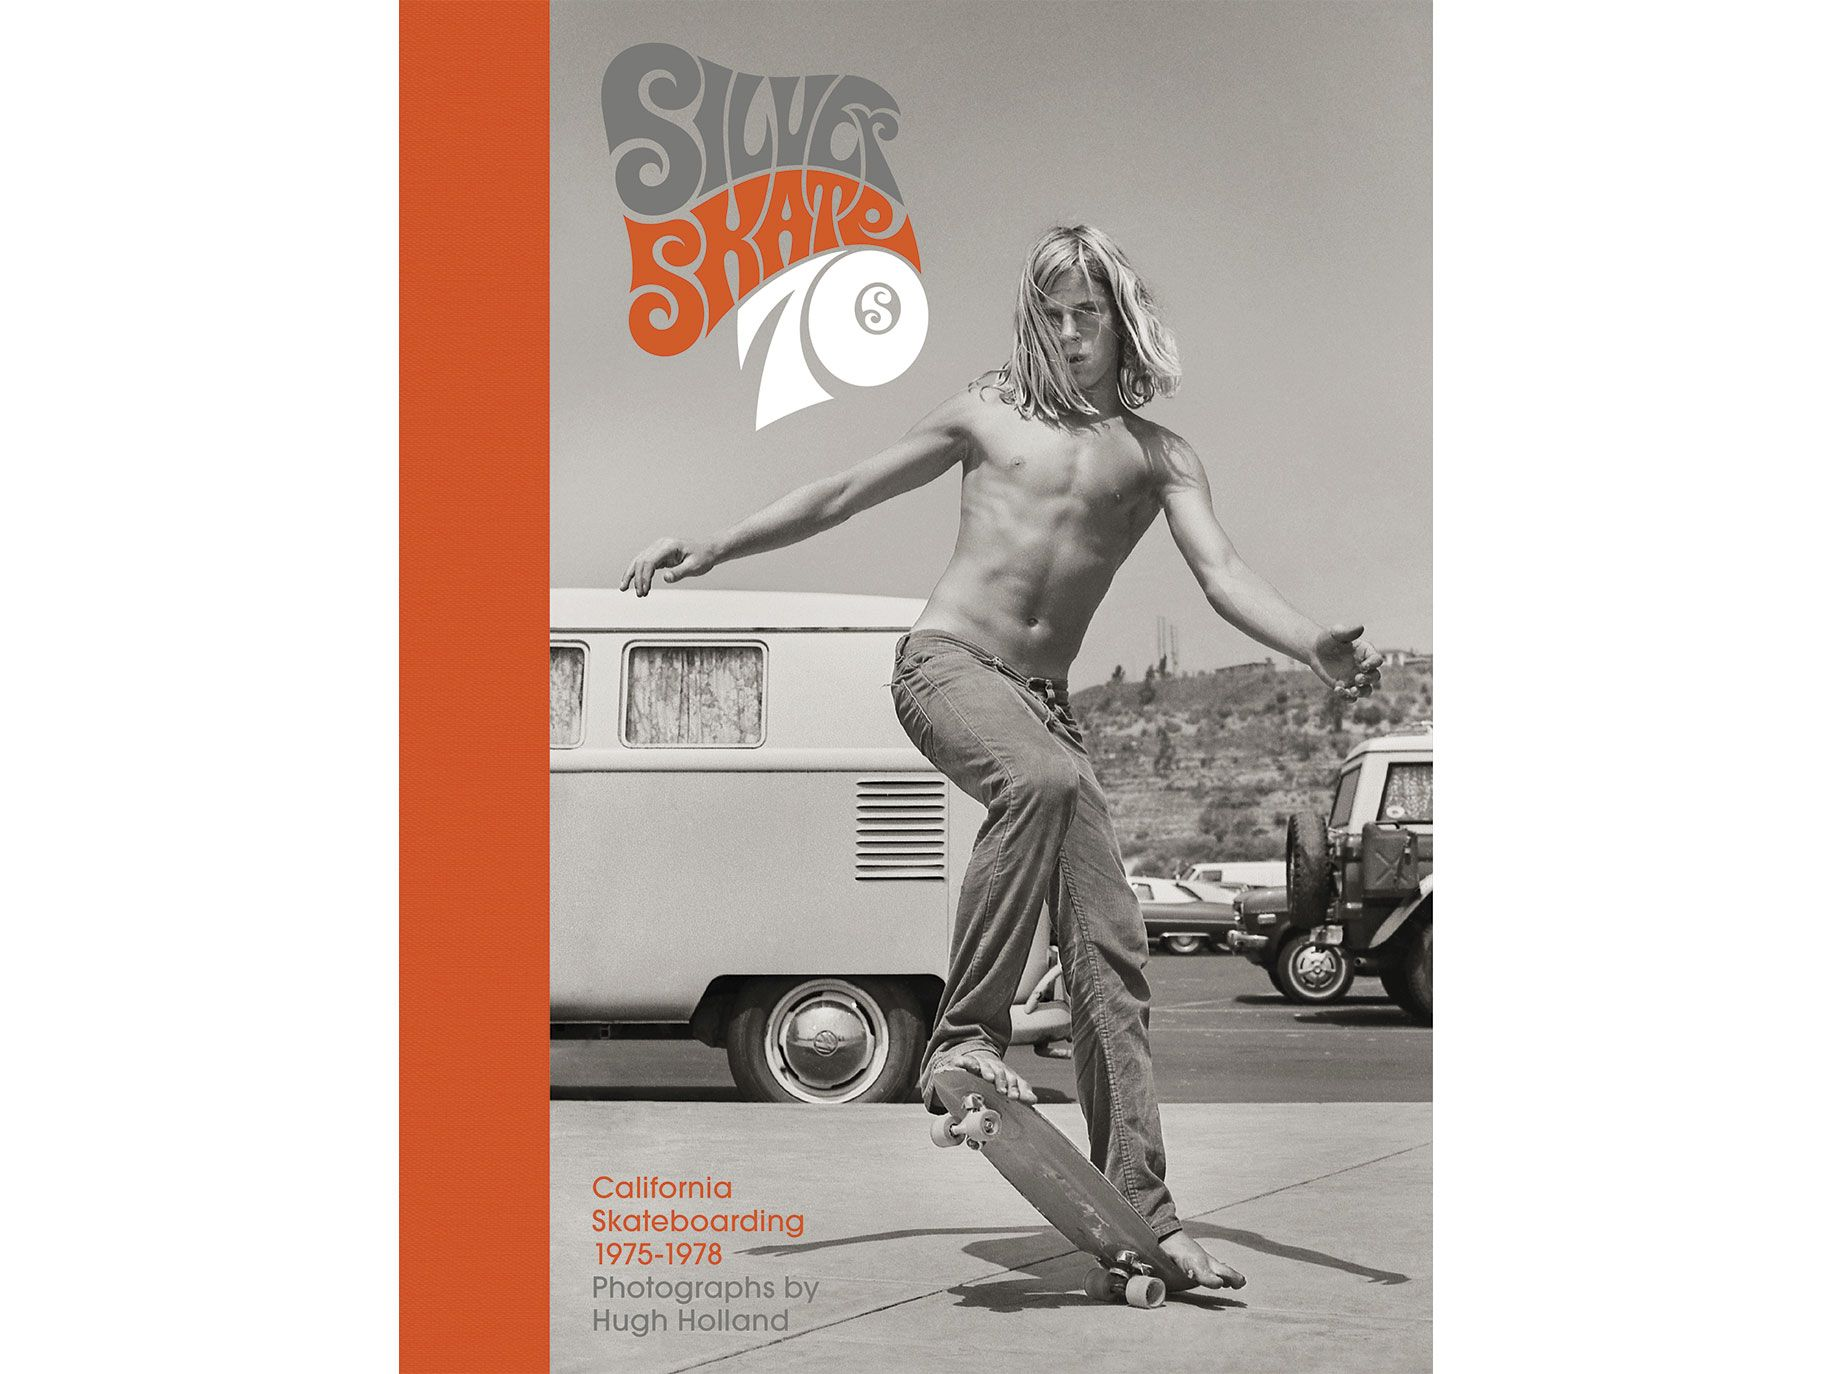 Silver. Skate. 70s: California Skateboarding 1975–1978, by Hugh Holland, Chronicle Books, 160 pages, $40